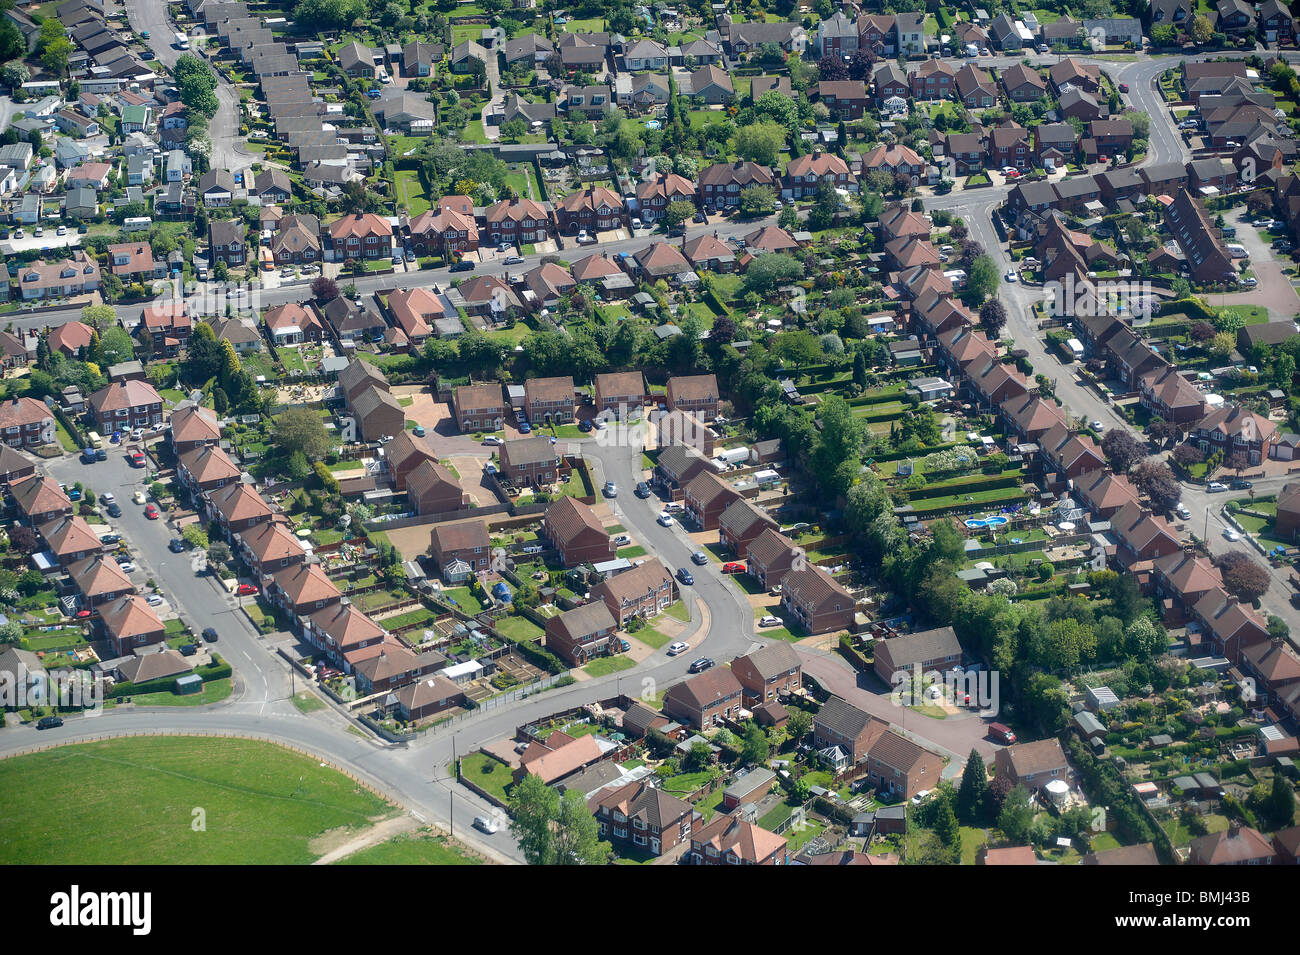 Suburban Britain, Nottingham, East Midlands, England, UK - Stock Image